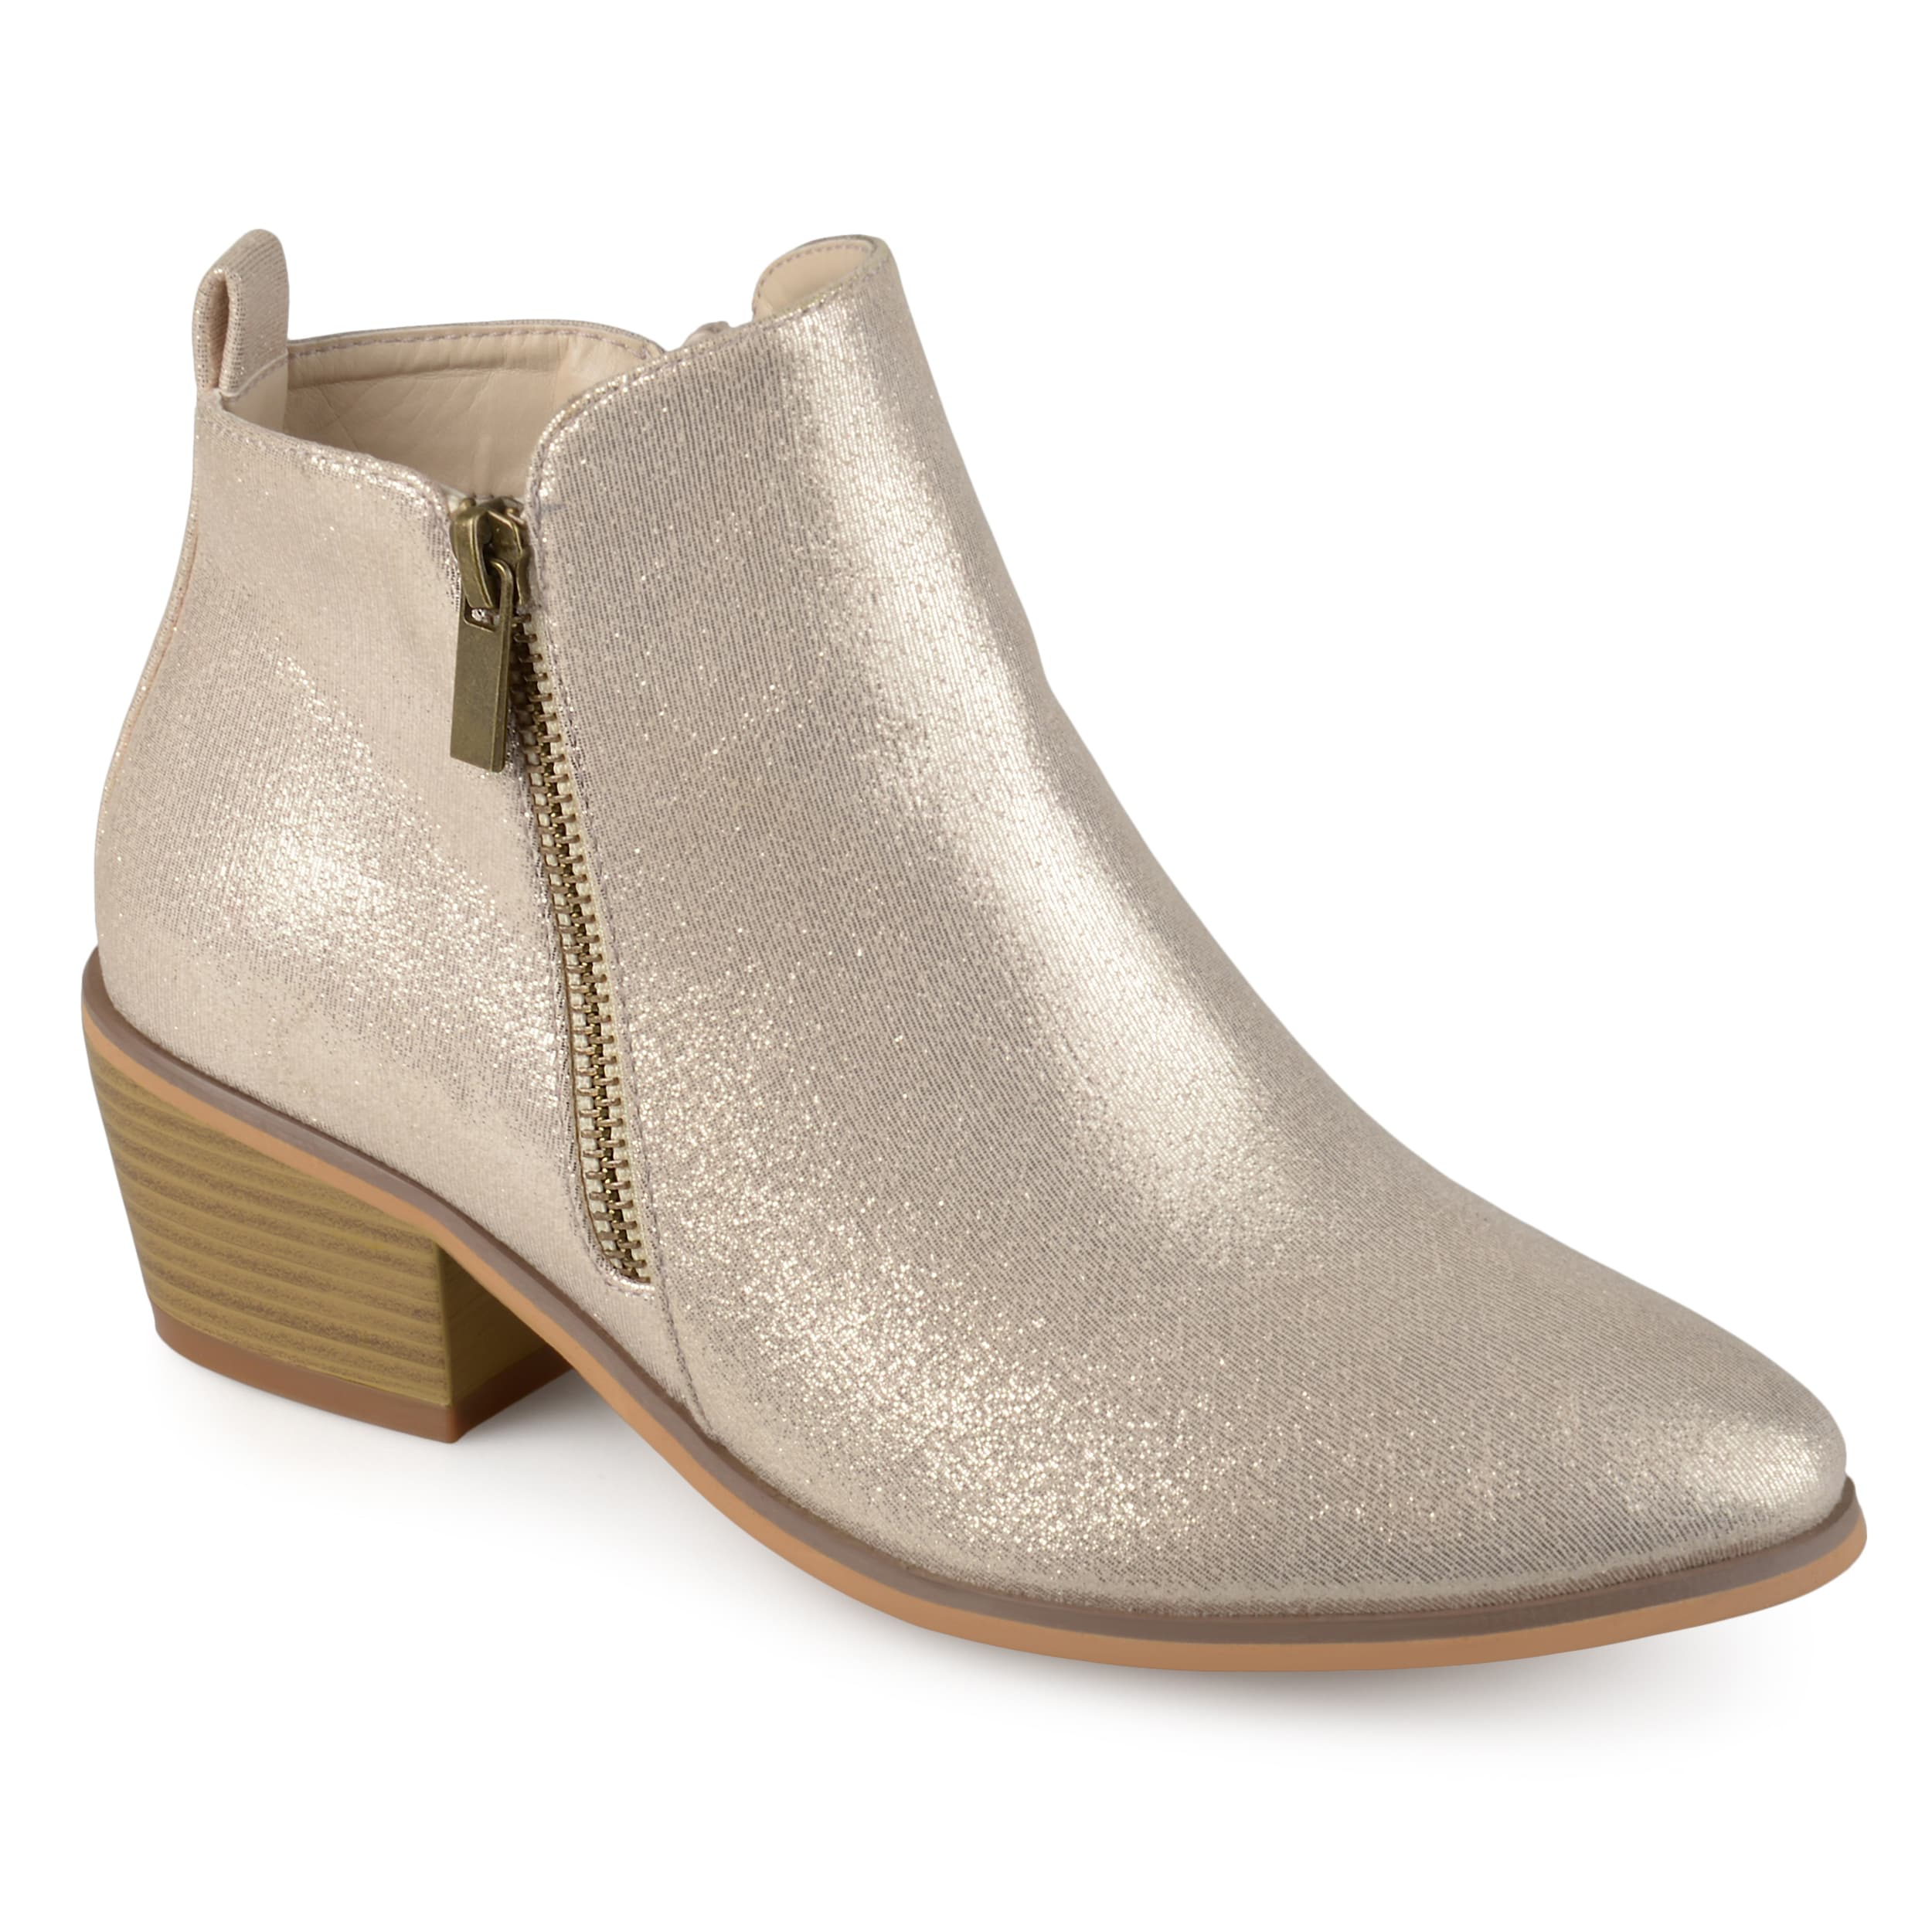 6c6f7f1a34f8 Shop Journee Collection Women s  Rebel  Side Zip Stacked Heel Booties -  Free Shipping Today - Overstock - 16068749